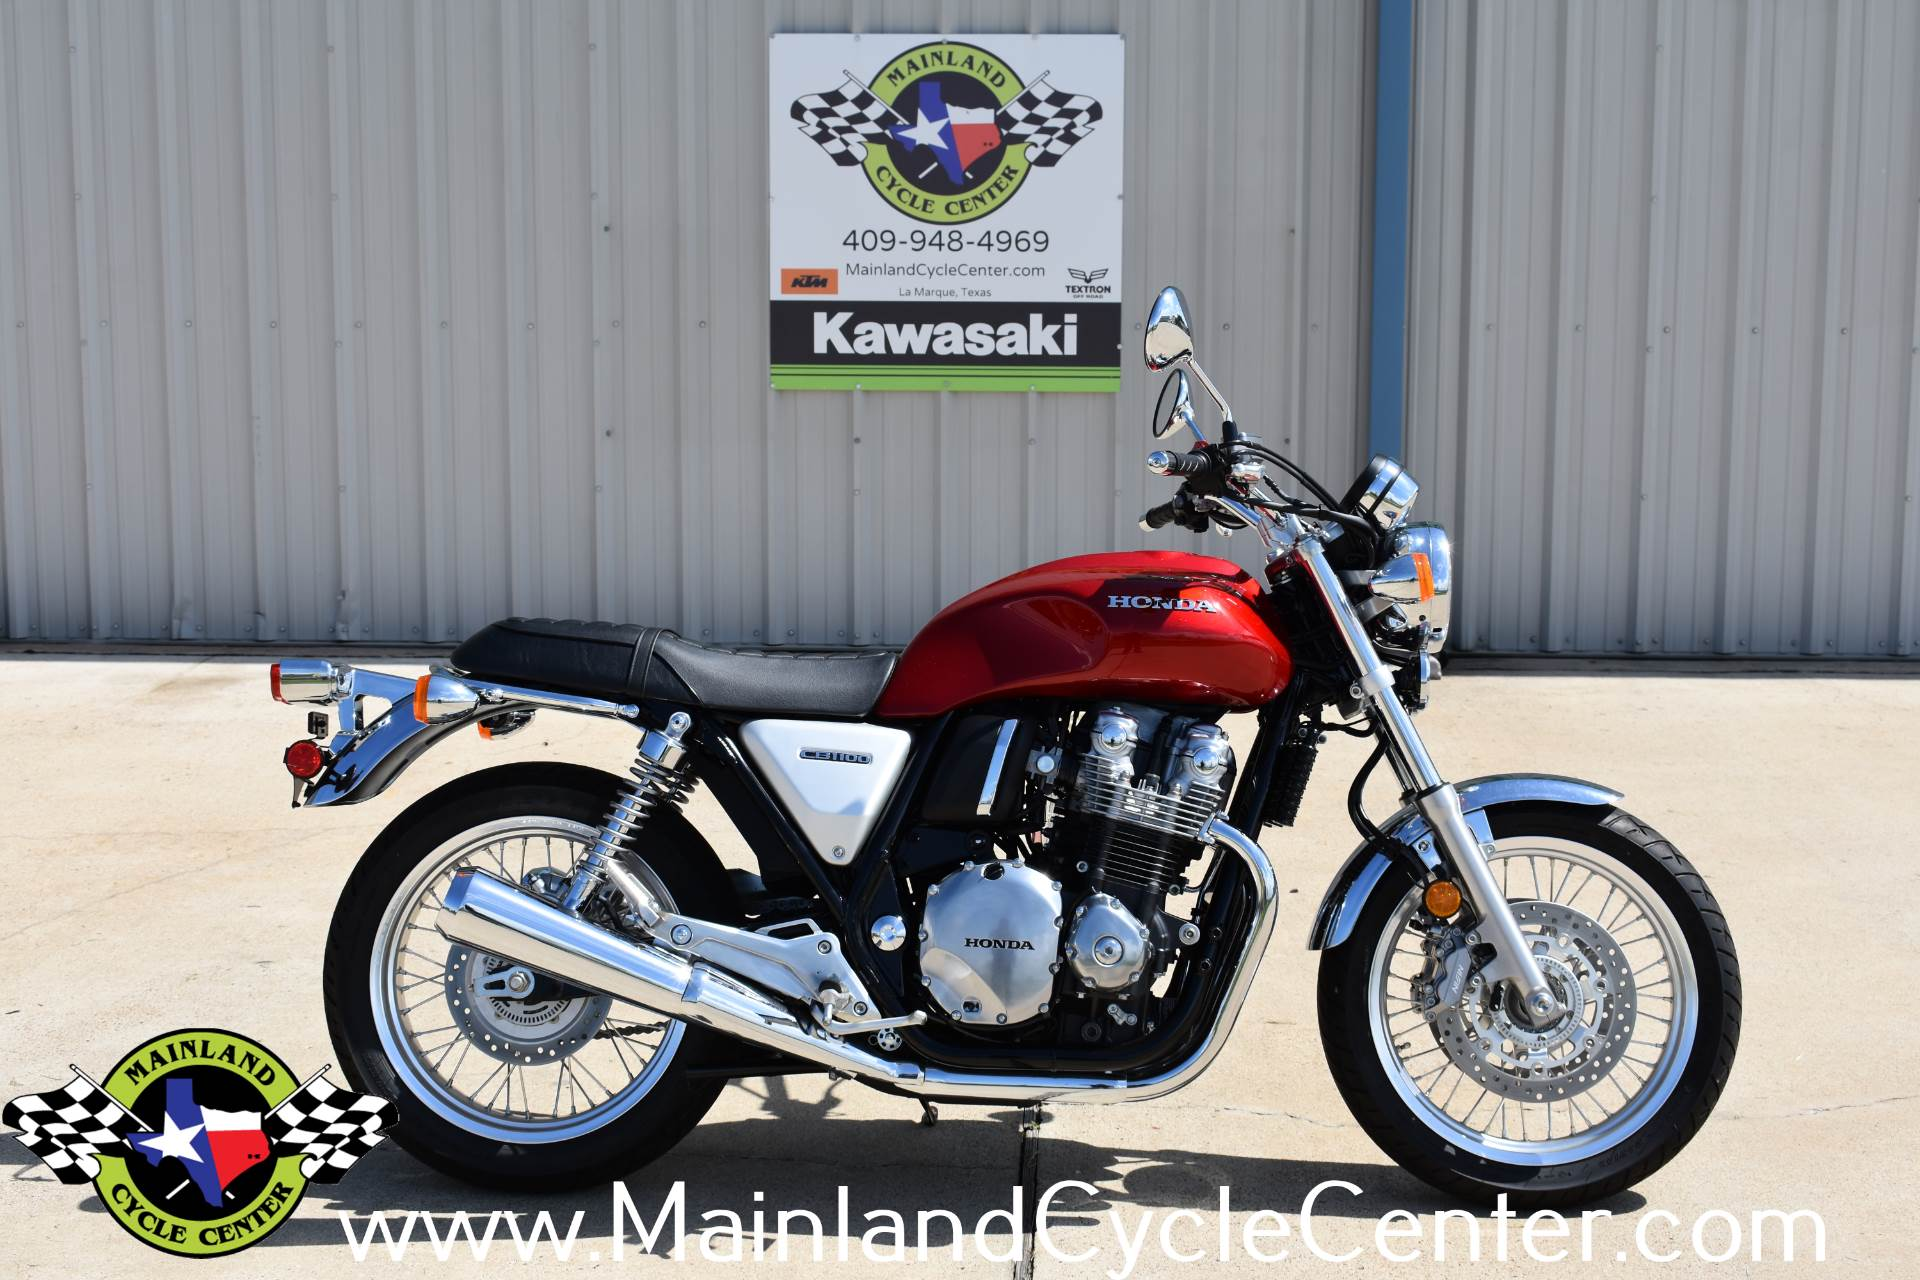 Used 2017 Honda Cb1100 Ex Candy Red Motorcycles In La Marque Tx 1970 Motorcycle Vin Decoder Texas